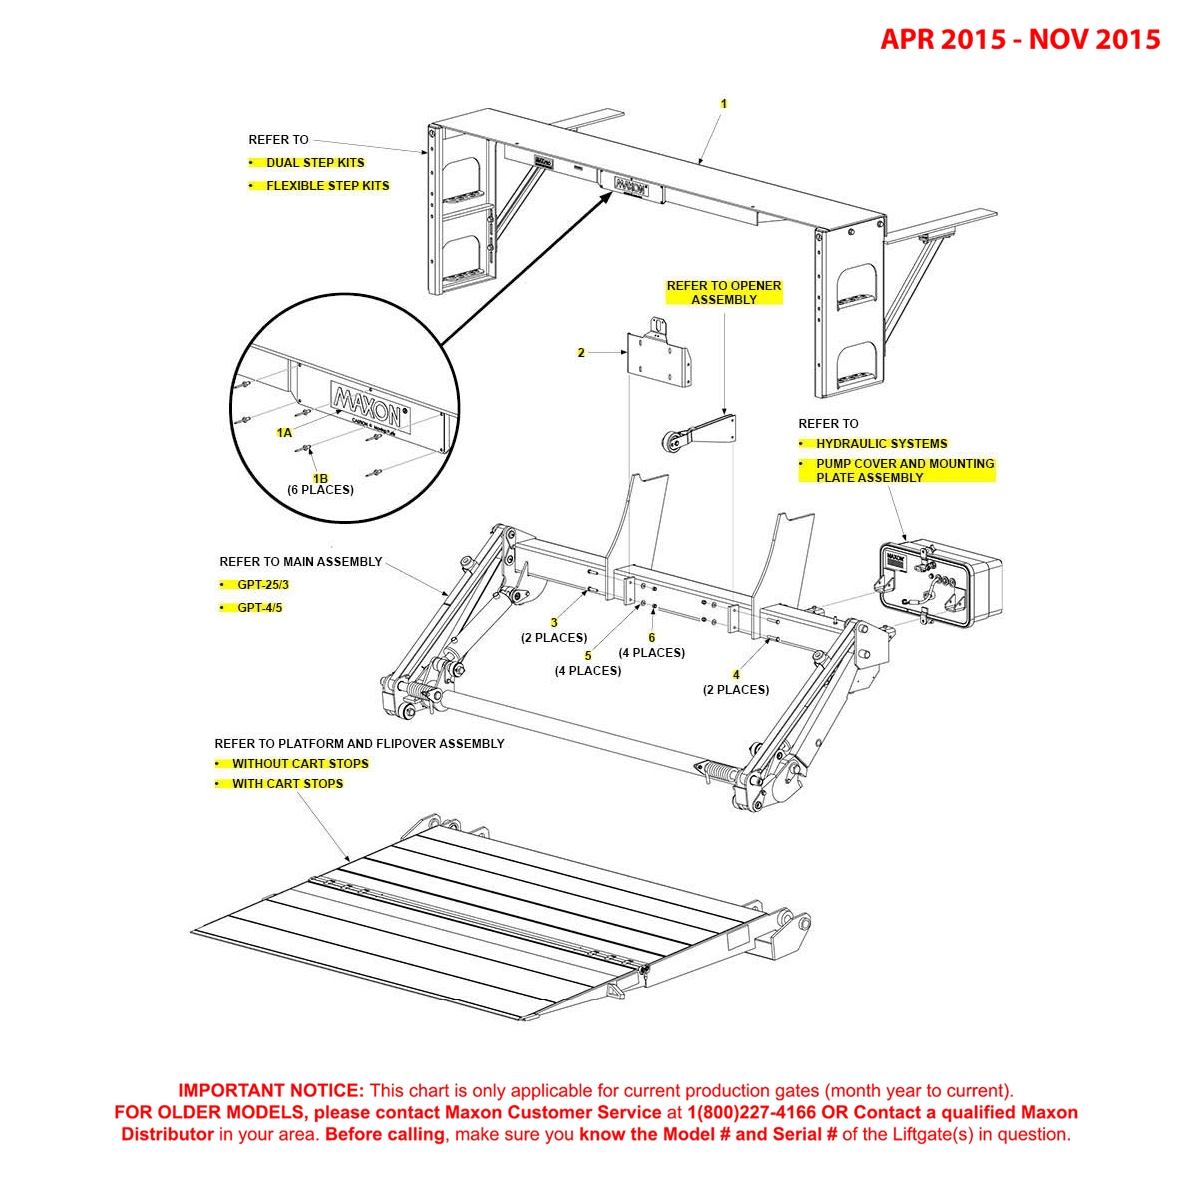 GPT (Apr 2015 - Nov 2015) Final Assembly Diagram